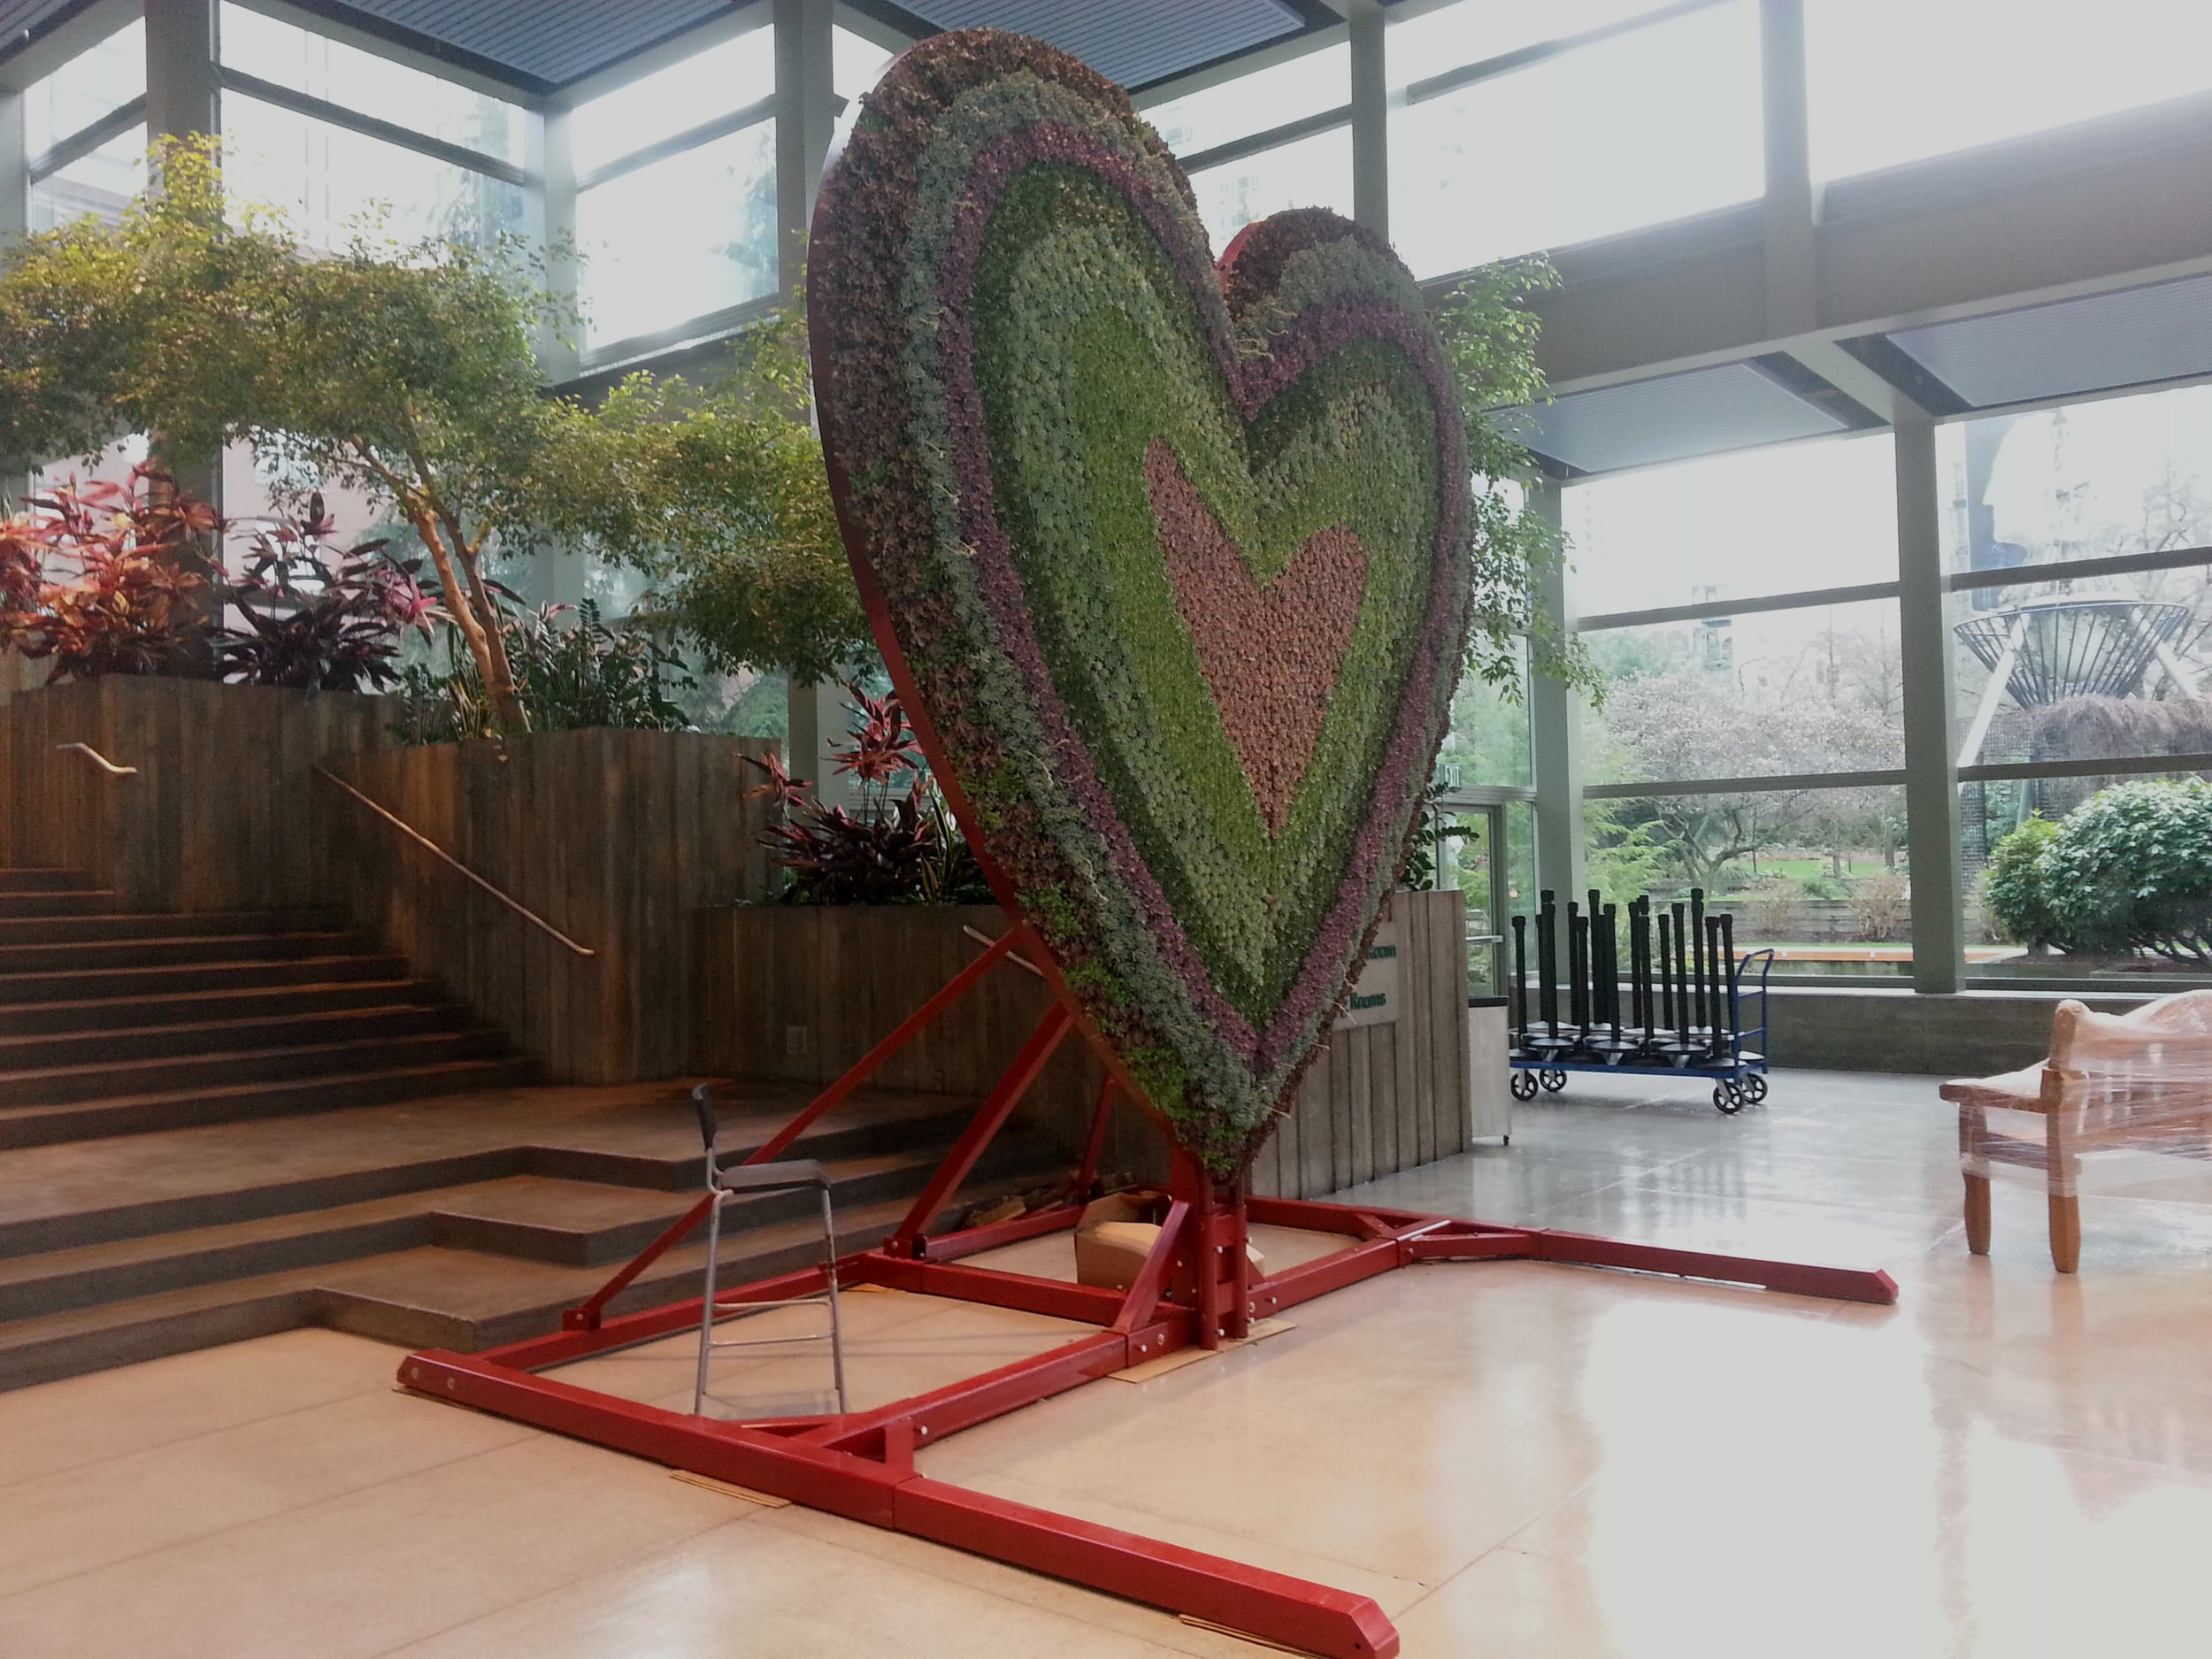 Heart sculpture setup for display at the Northwest Flower and Garden show in Seattle WA